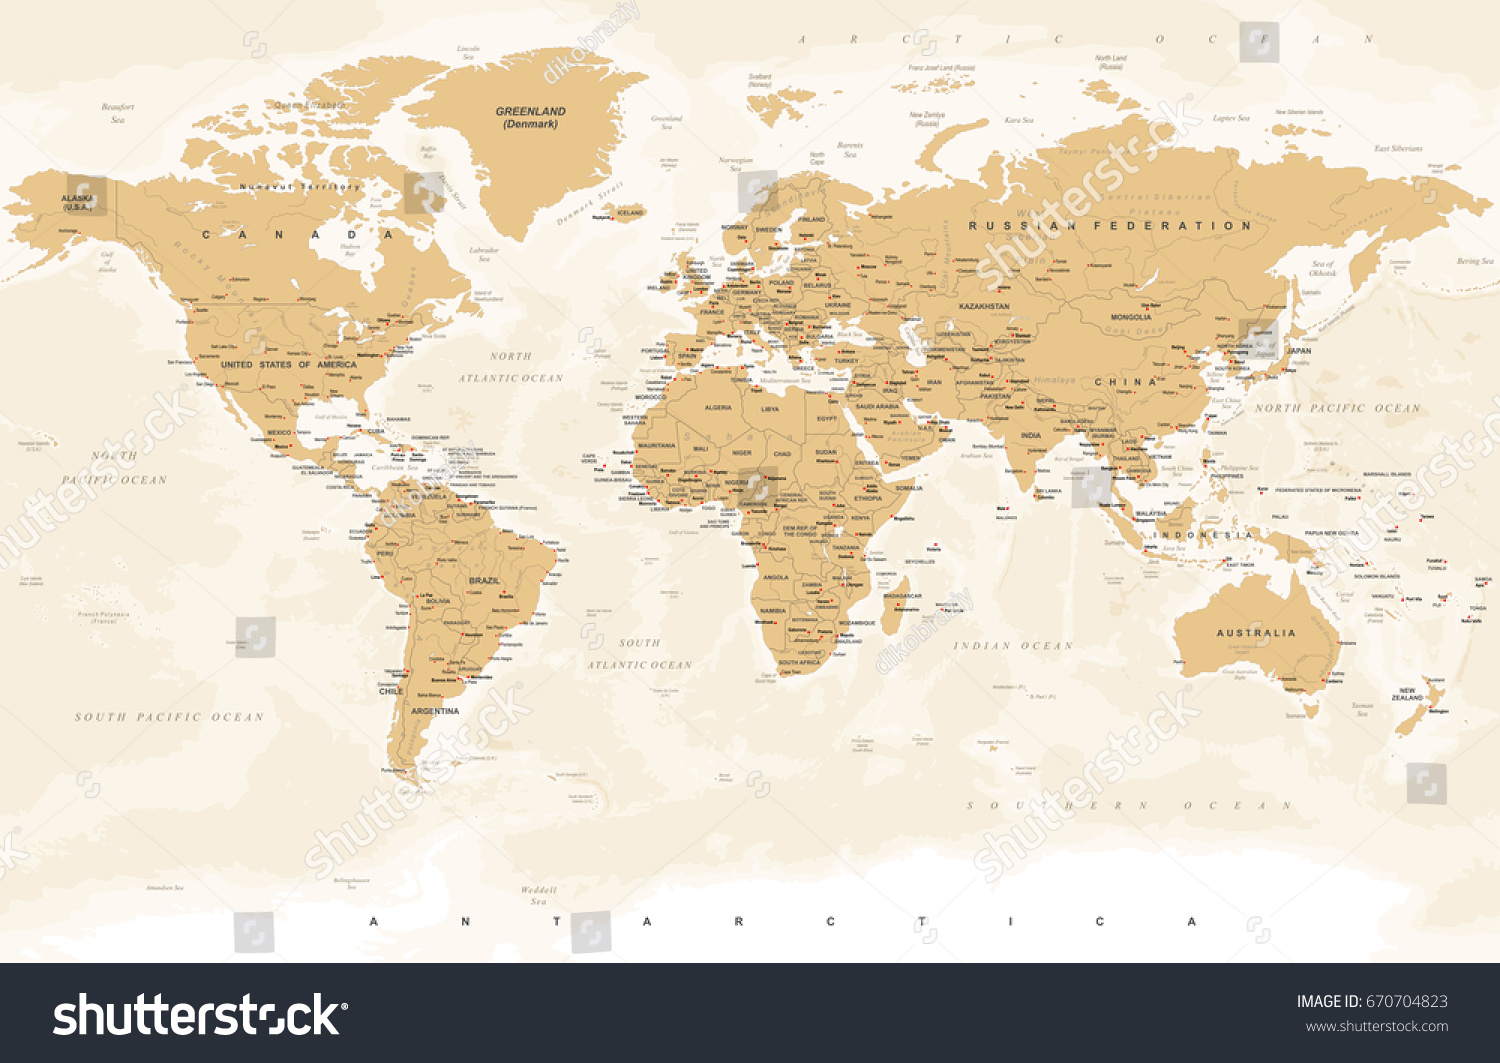 World map vintage style high detailed stock vector hd royalty free world map in vintage style high detailed worldmap illustration gumiabroncs Gallery